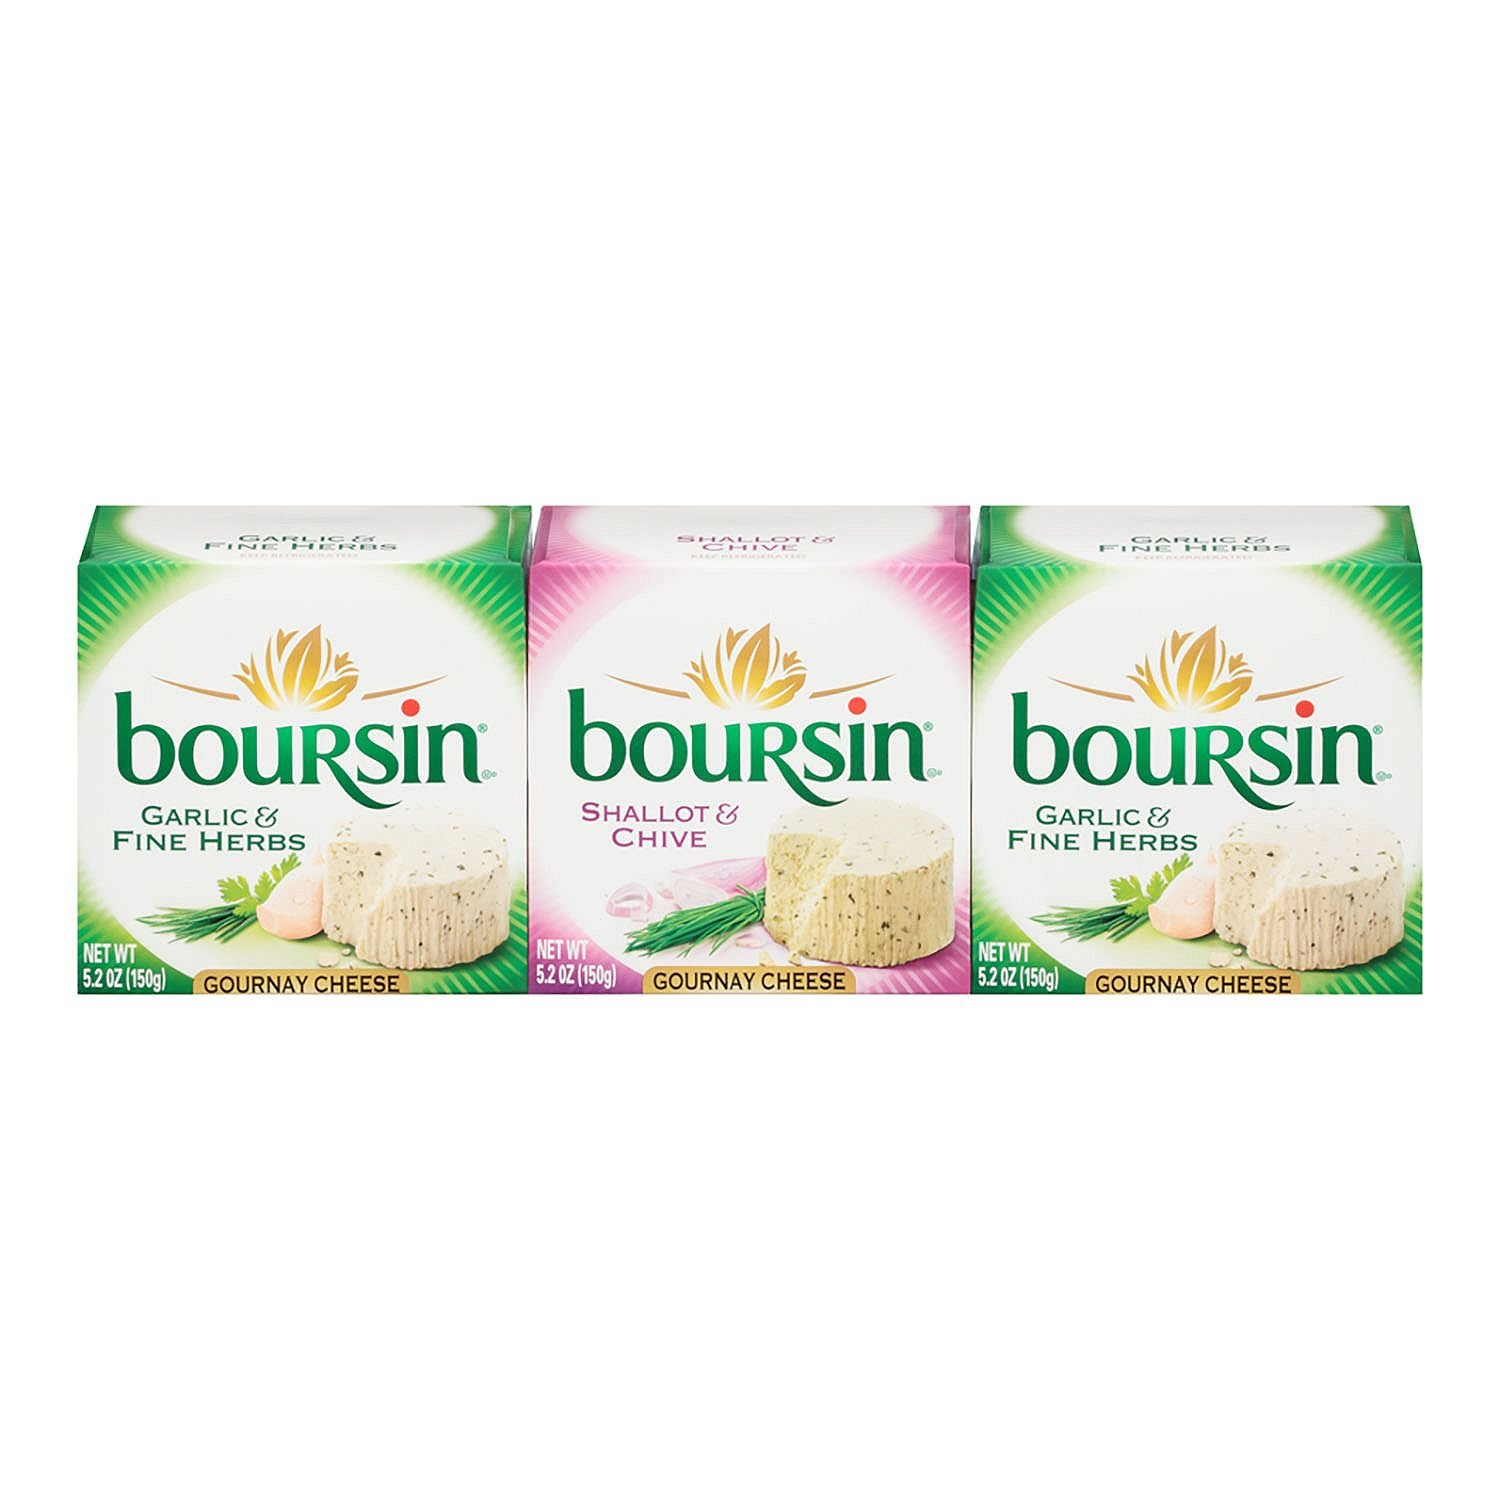 Boursin Garlic Herb and Shallot Weekly update Chive oz. Cheese New York Mall pk each 5.2 3